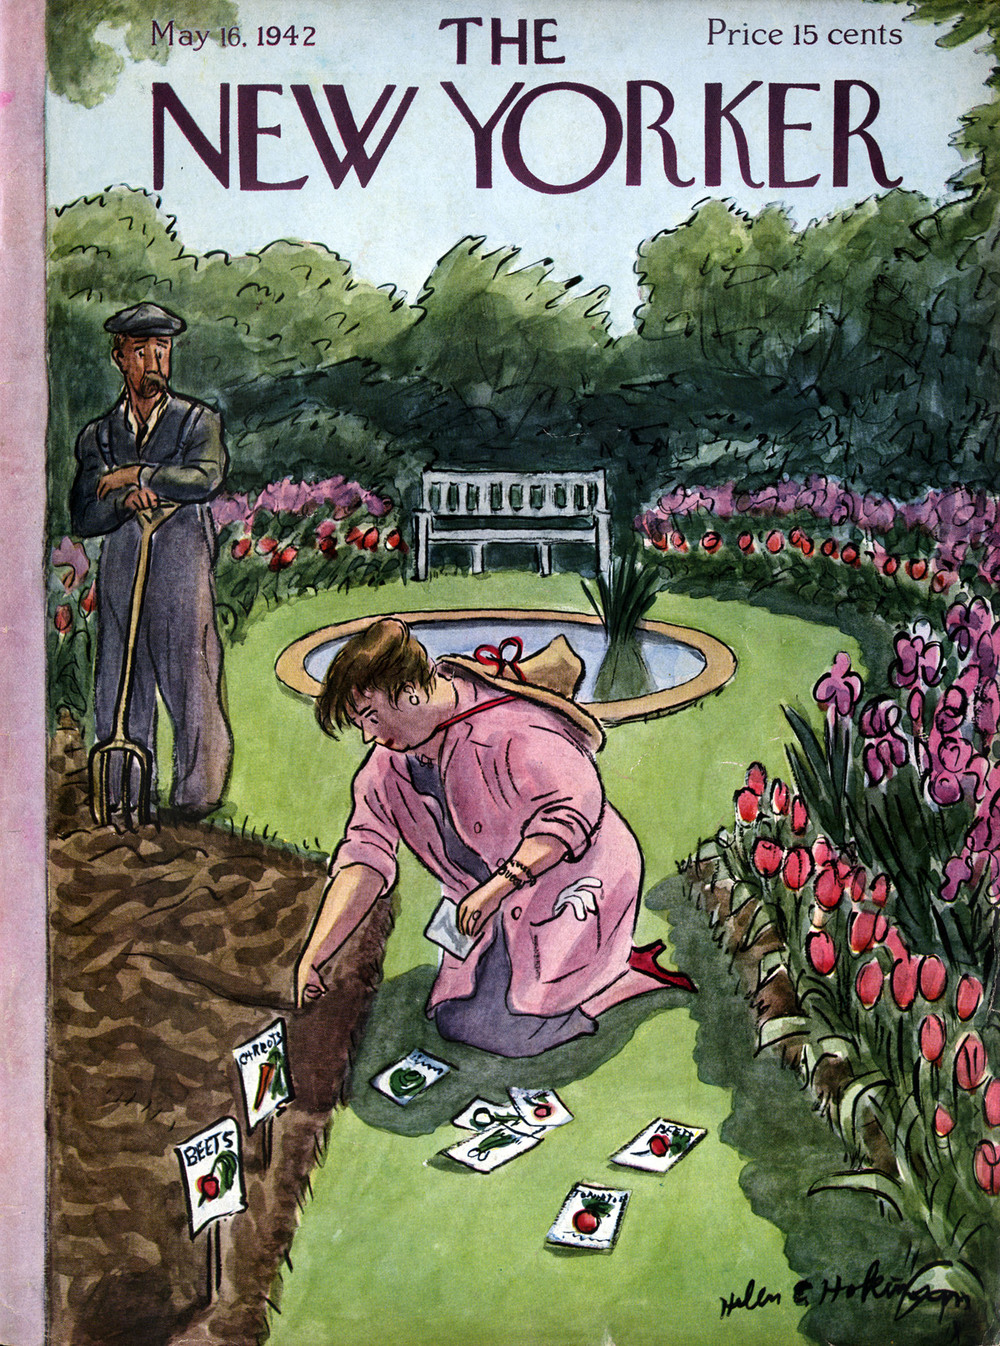 Helen E. Hokinson, Cover Illustration for The New Yorker. May16,  1942.